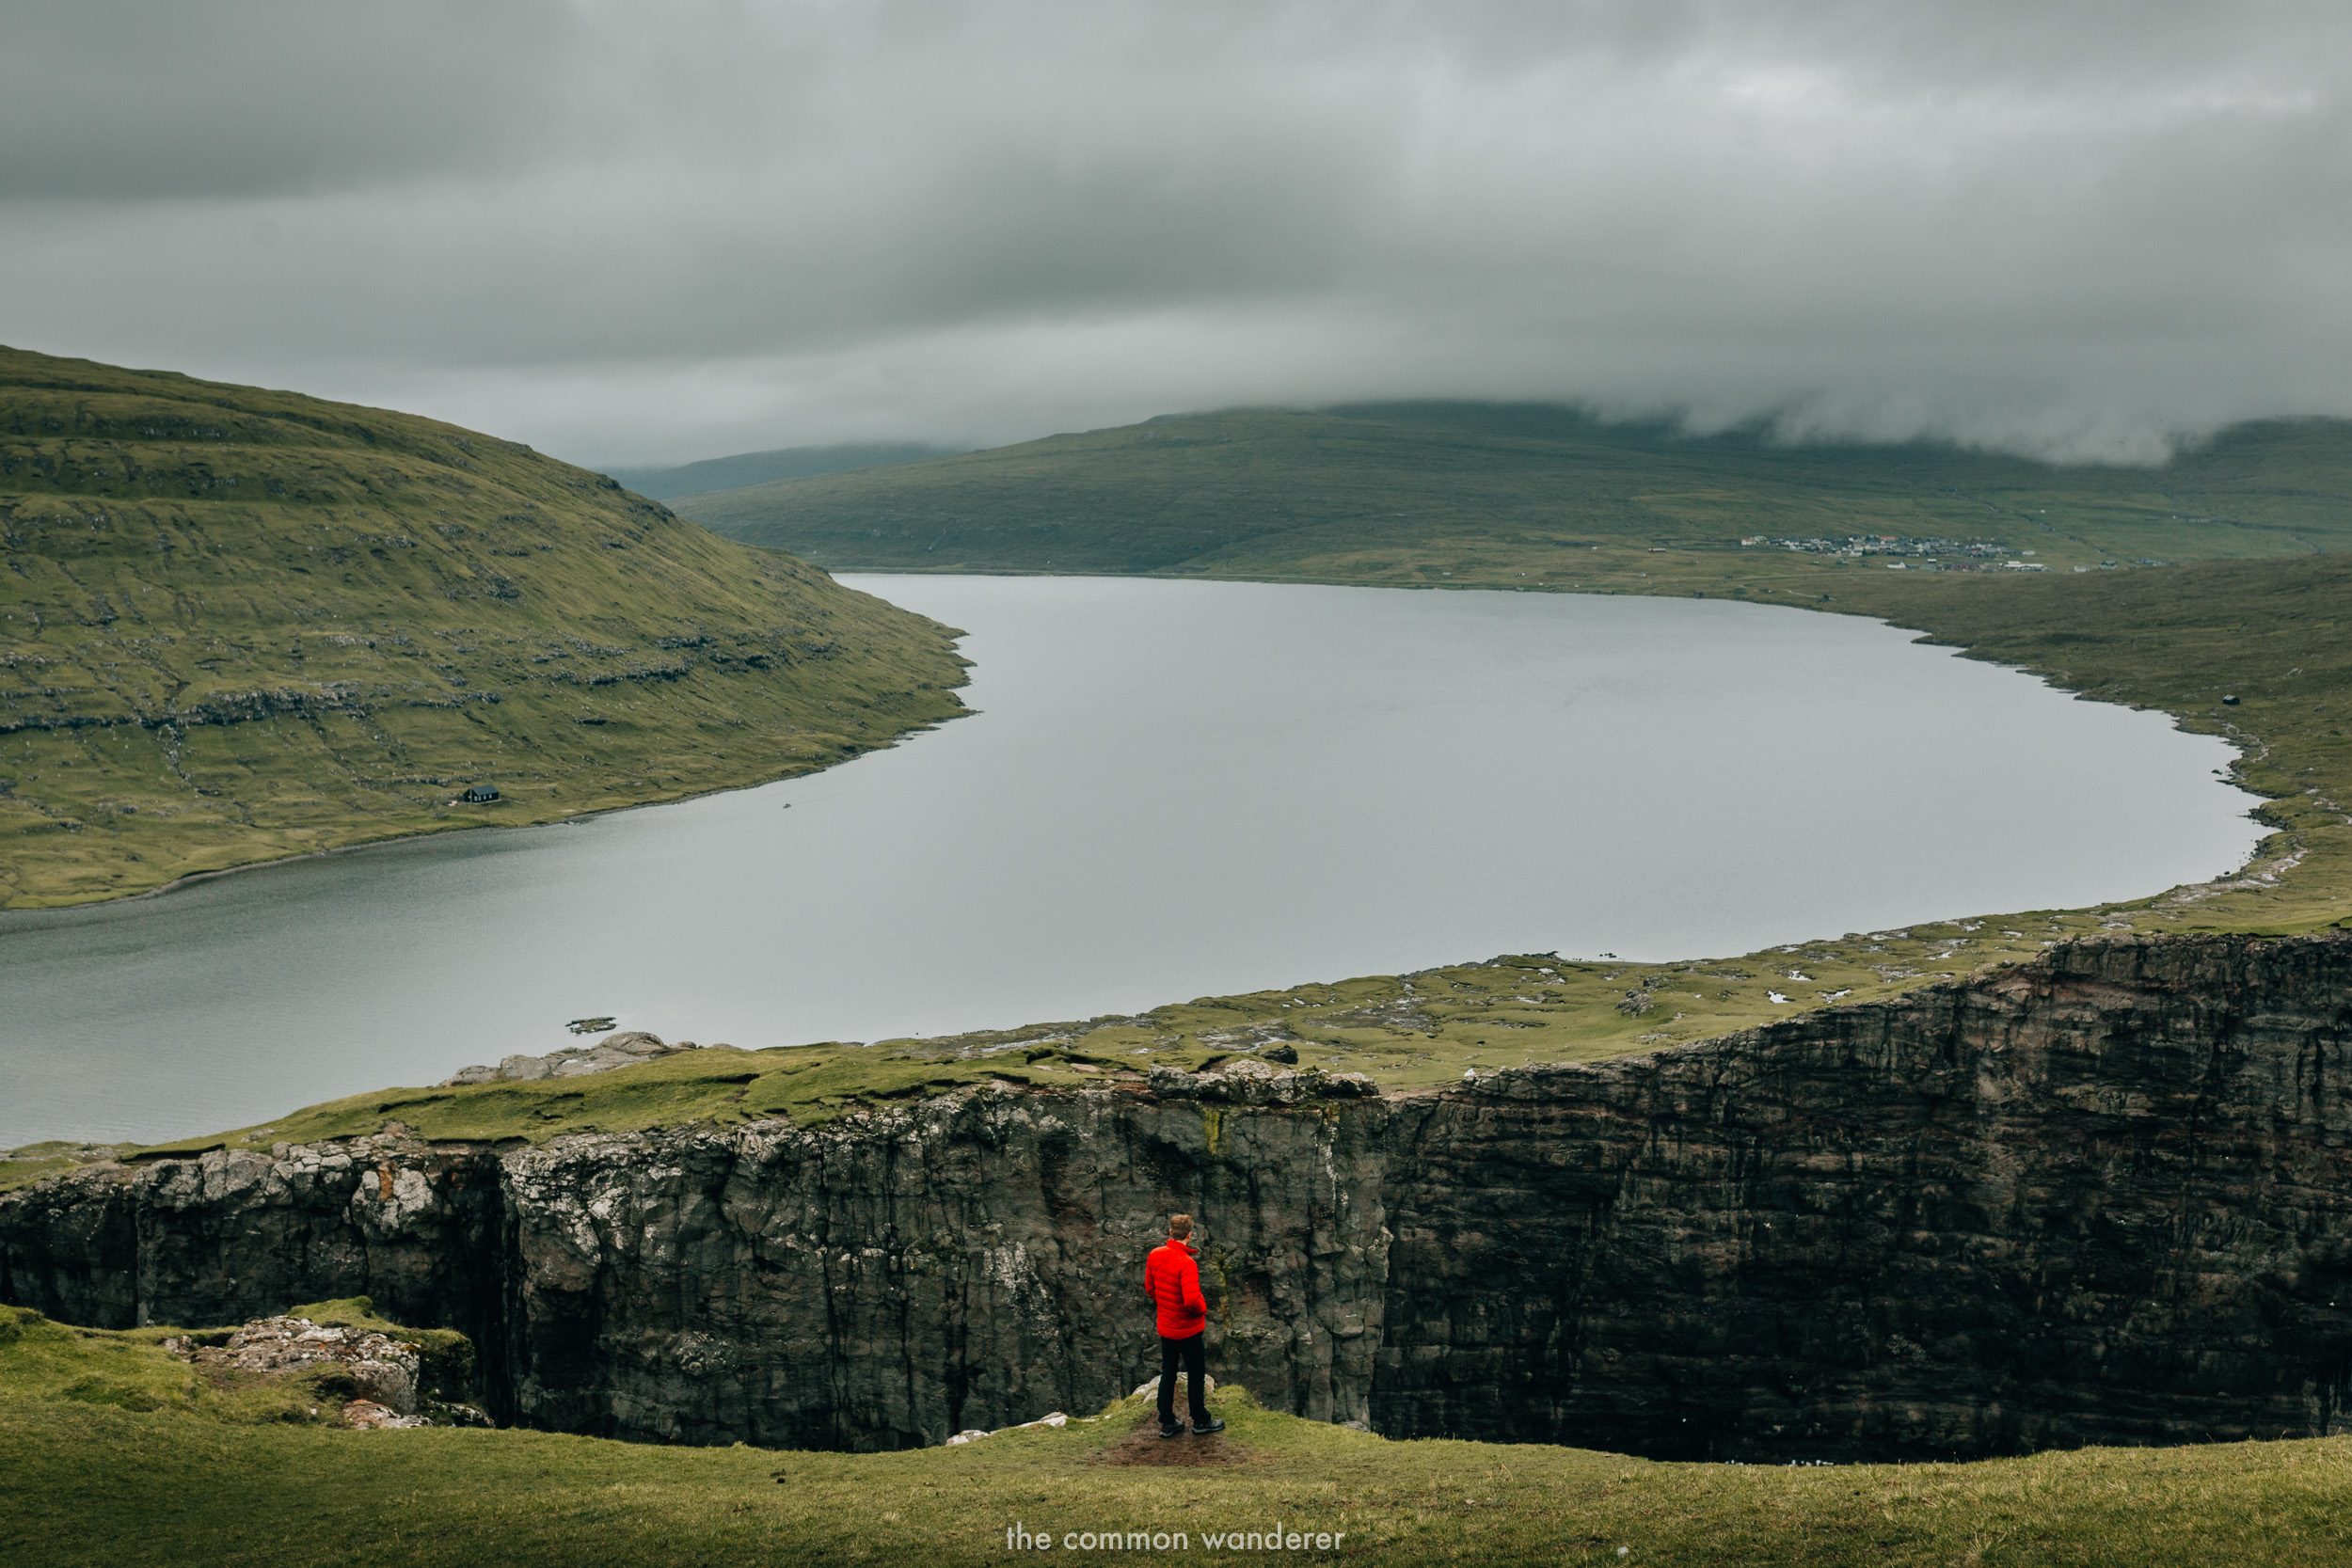 The Common Wanderer_-Faroe Islands 13.jpg